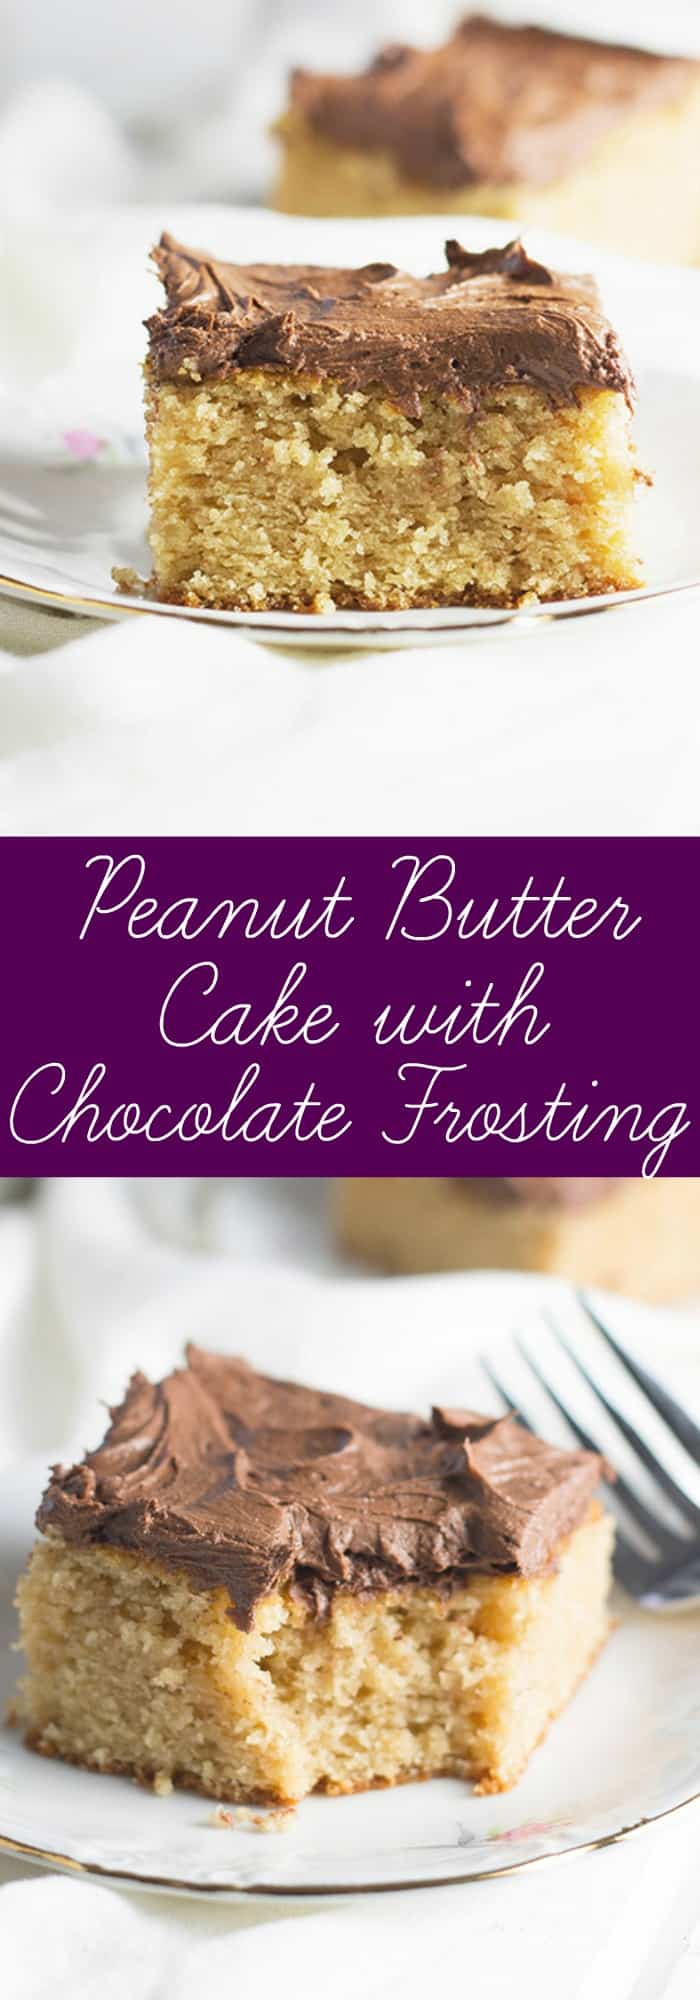 Peanut Butter Cake with Chocolate Frosting   Countryside Cravings